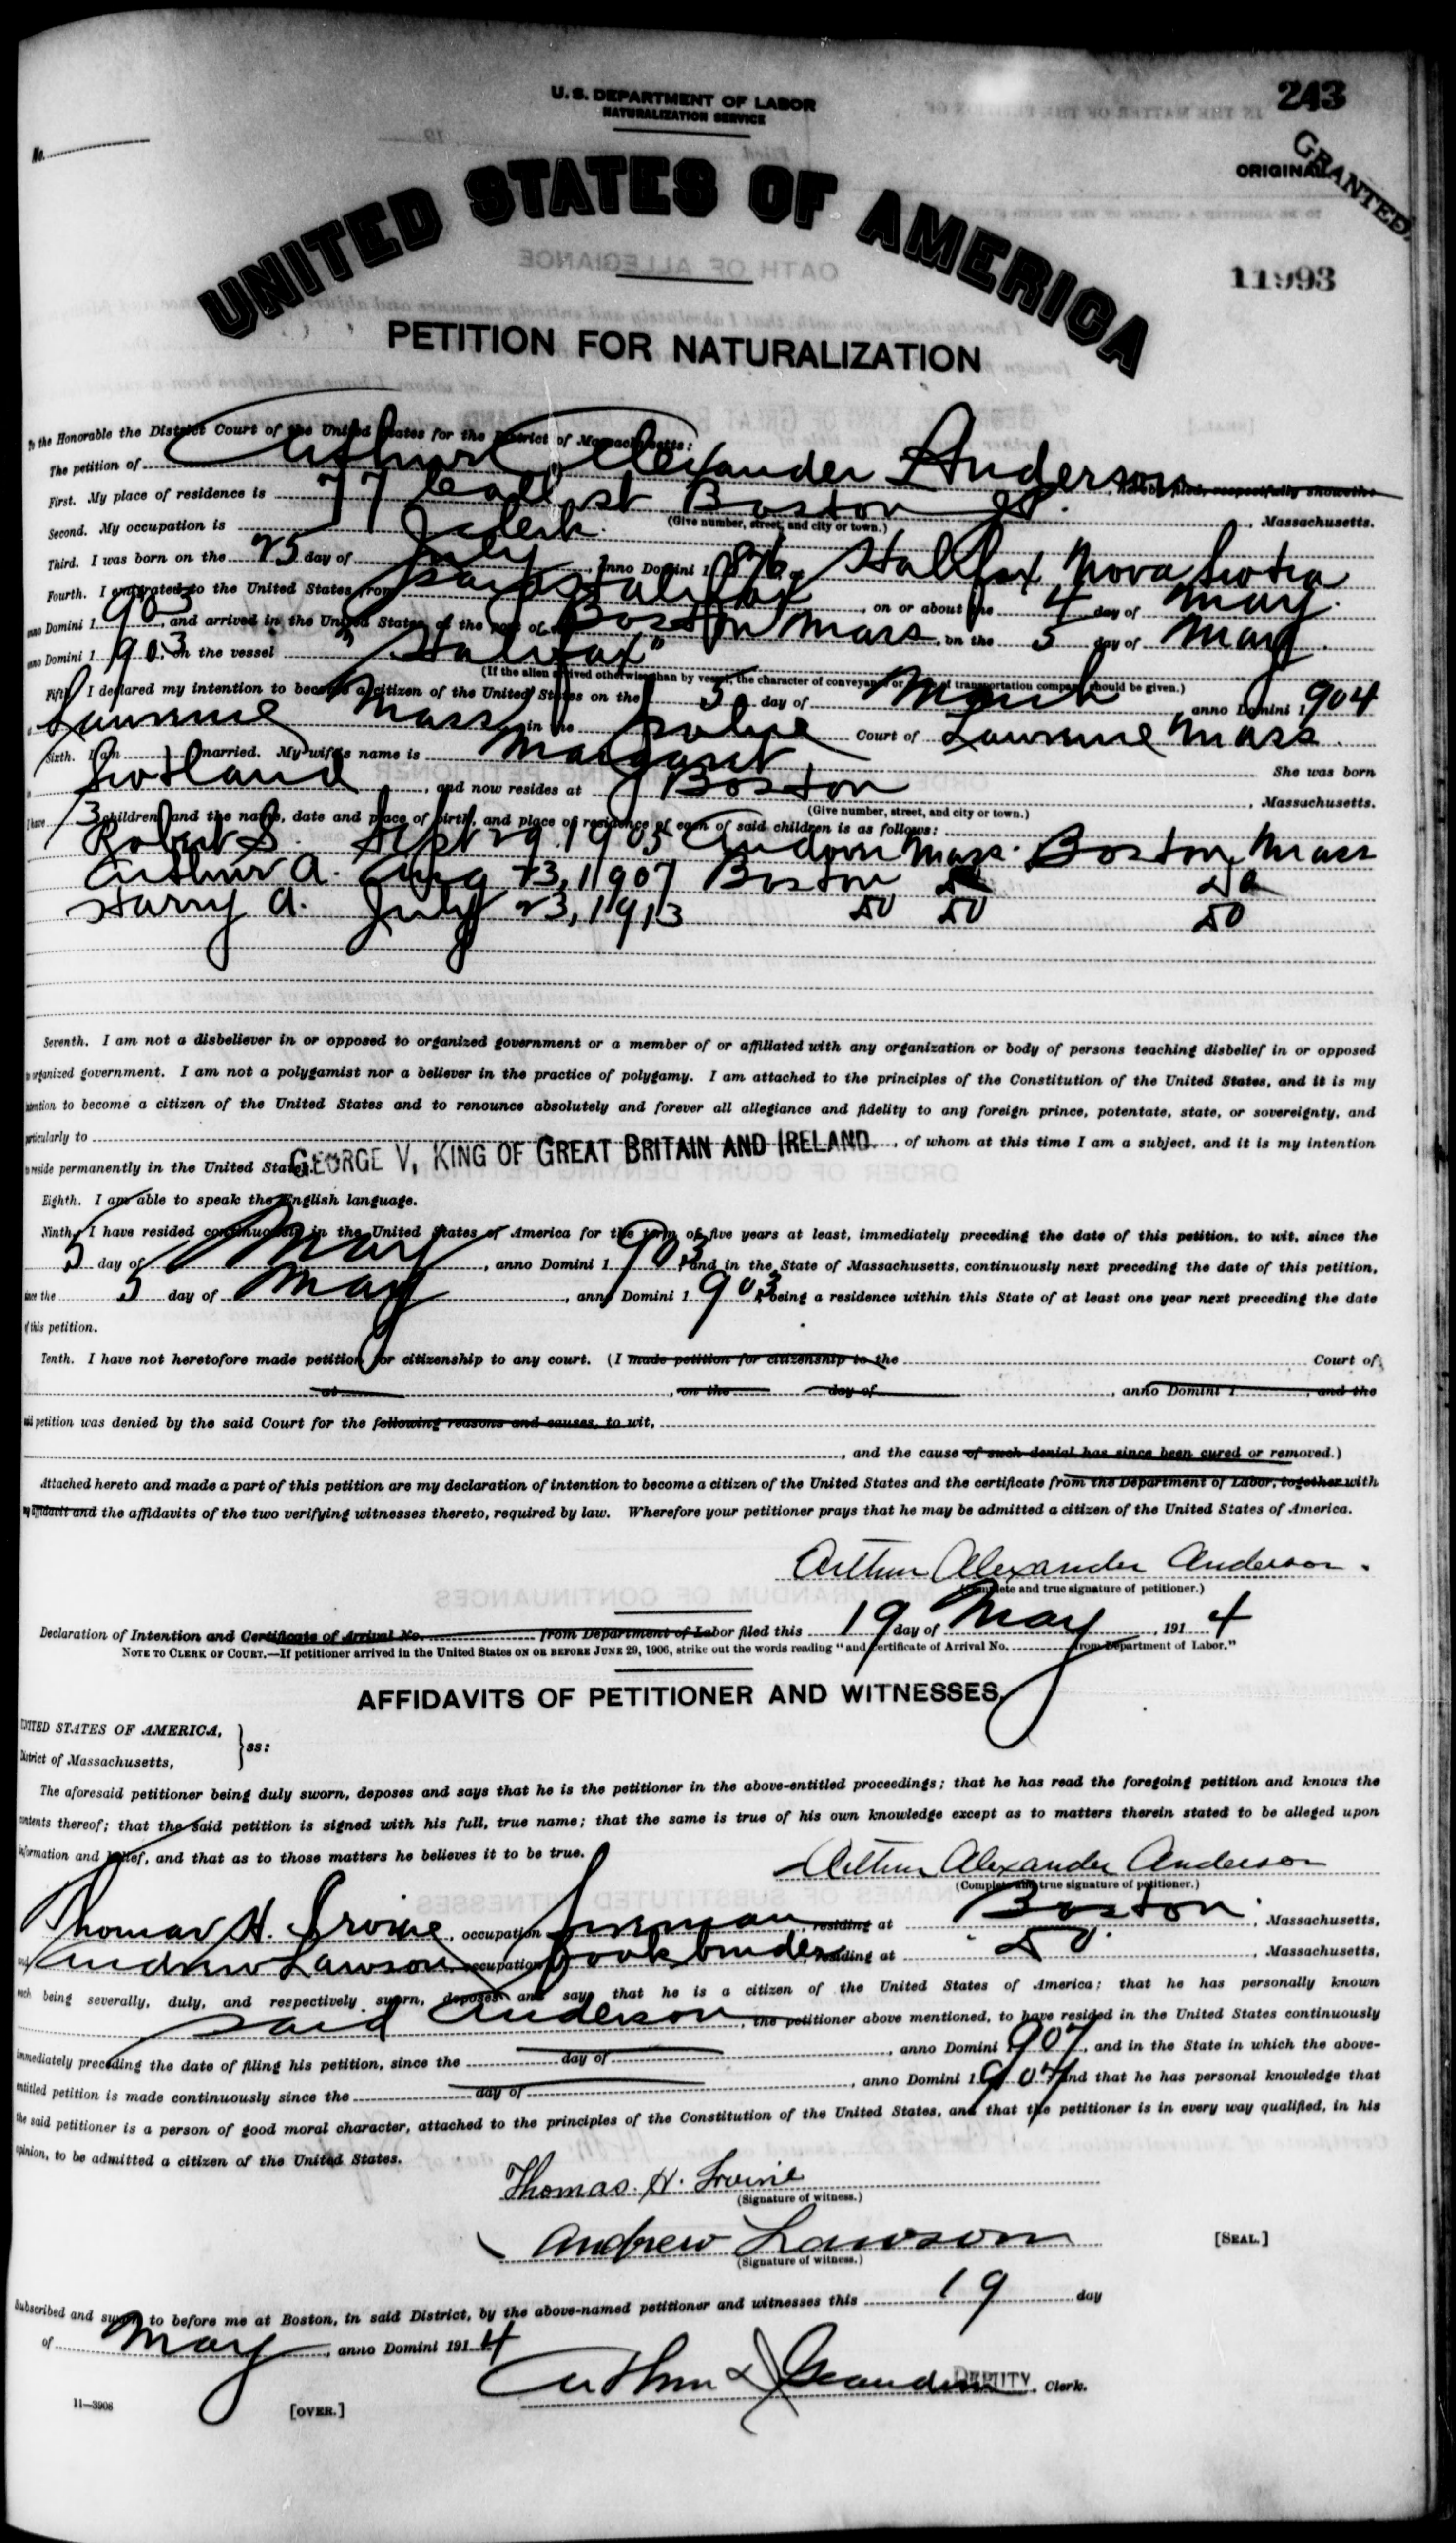 Petition for Naturalization of Arthur Alexander Anderson